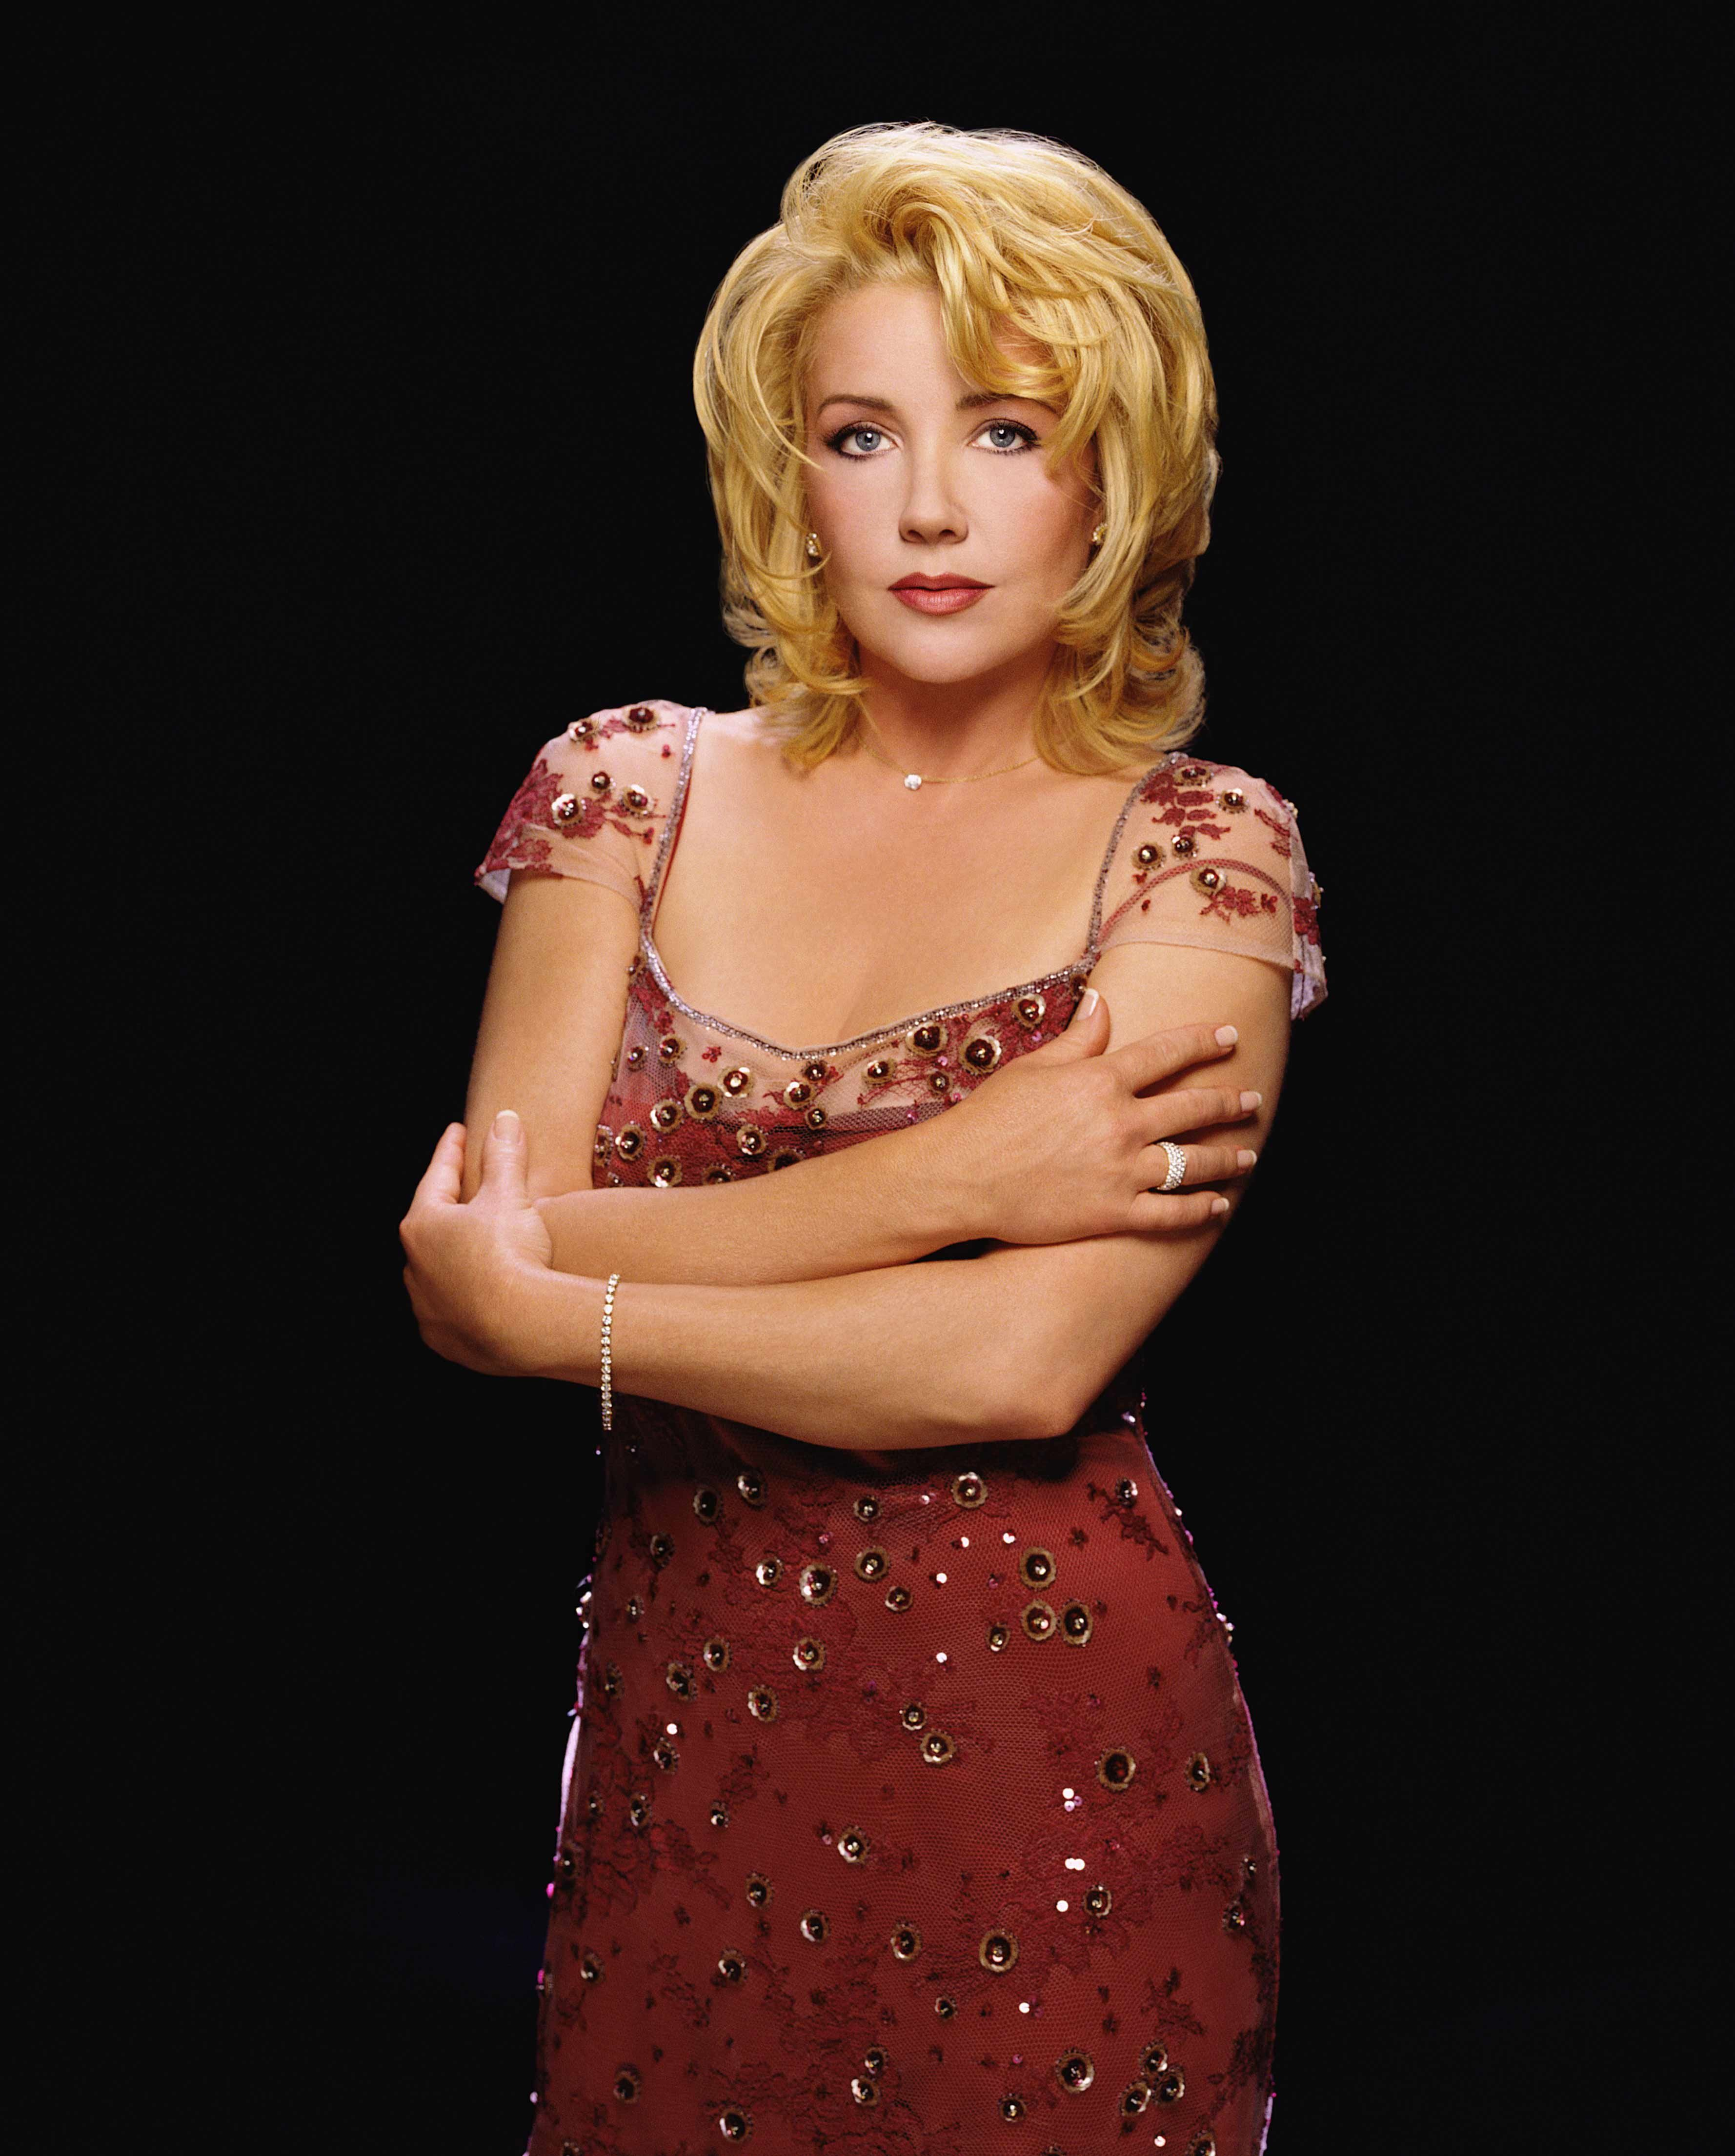 Melody Thomas Scott as Nikki Reed Newman in a red dress